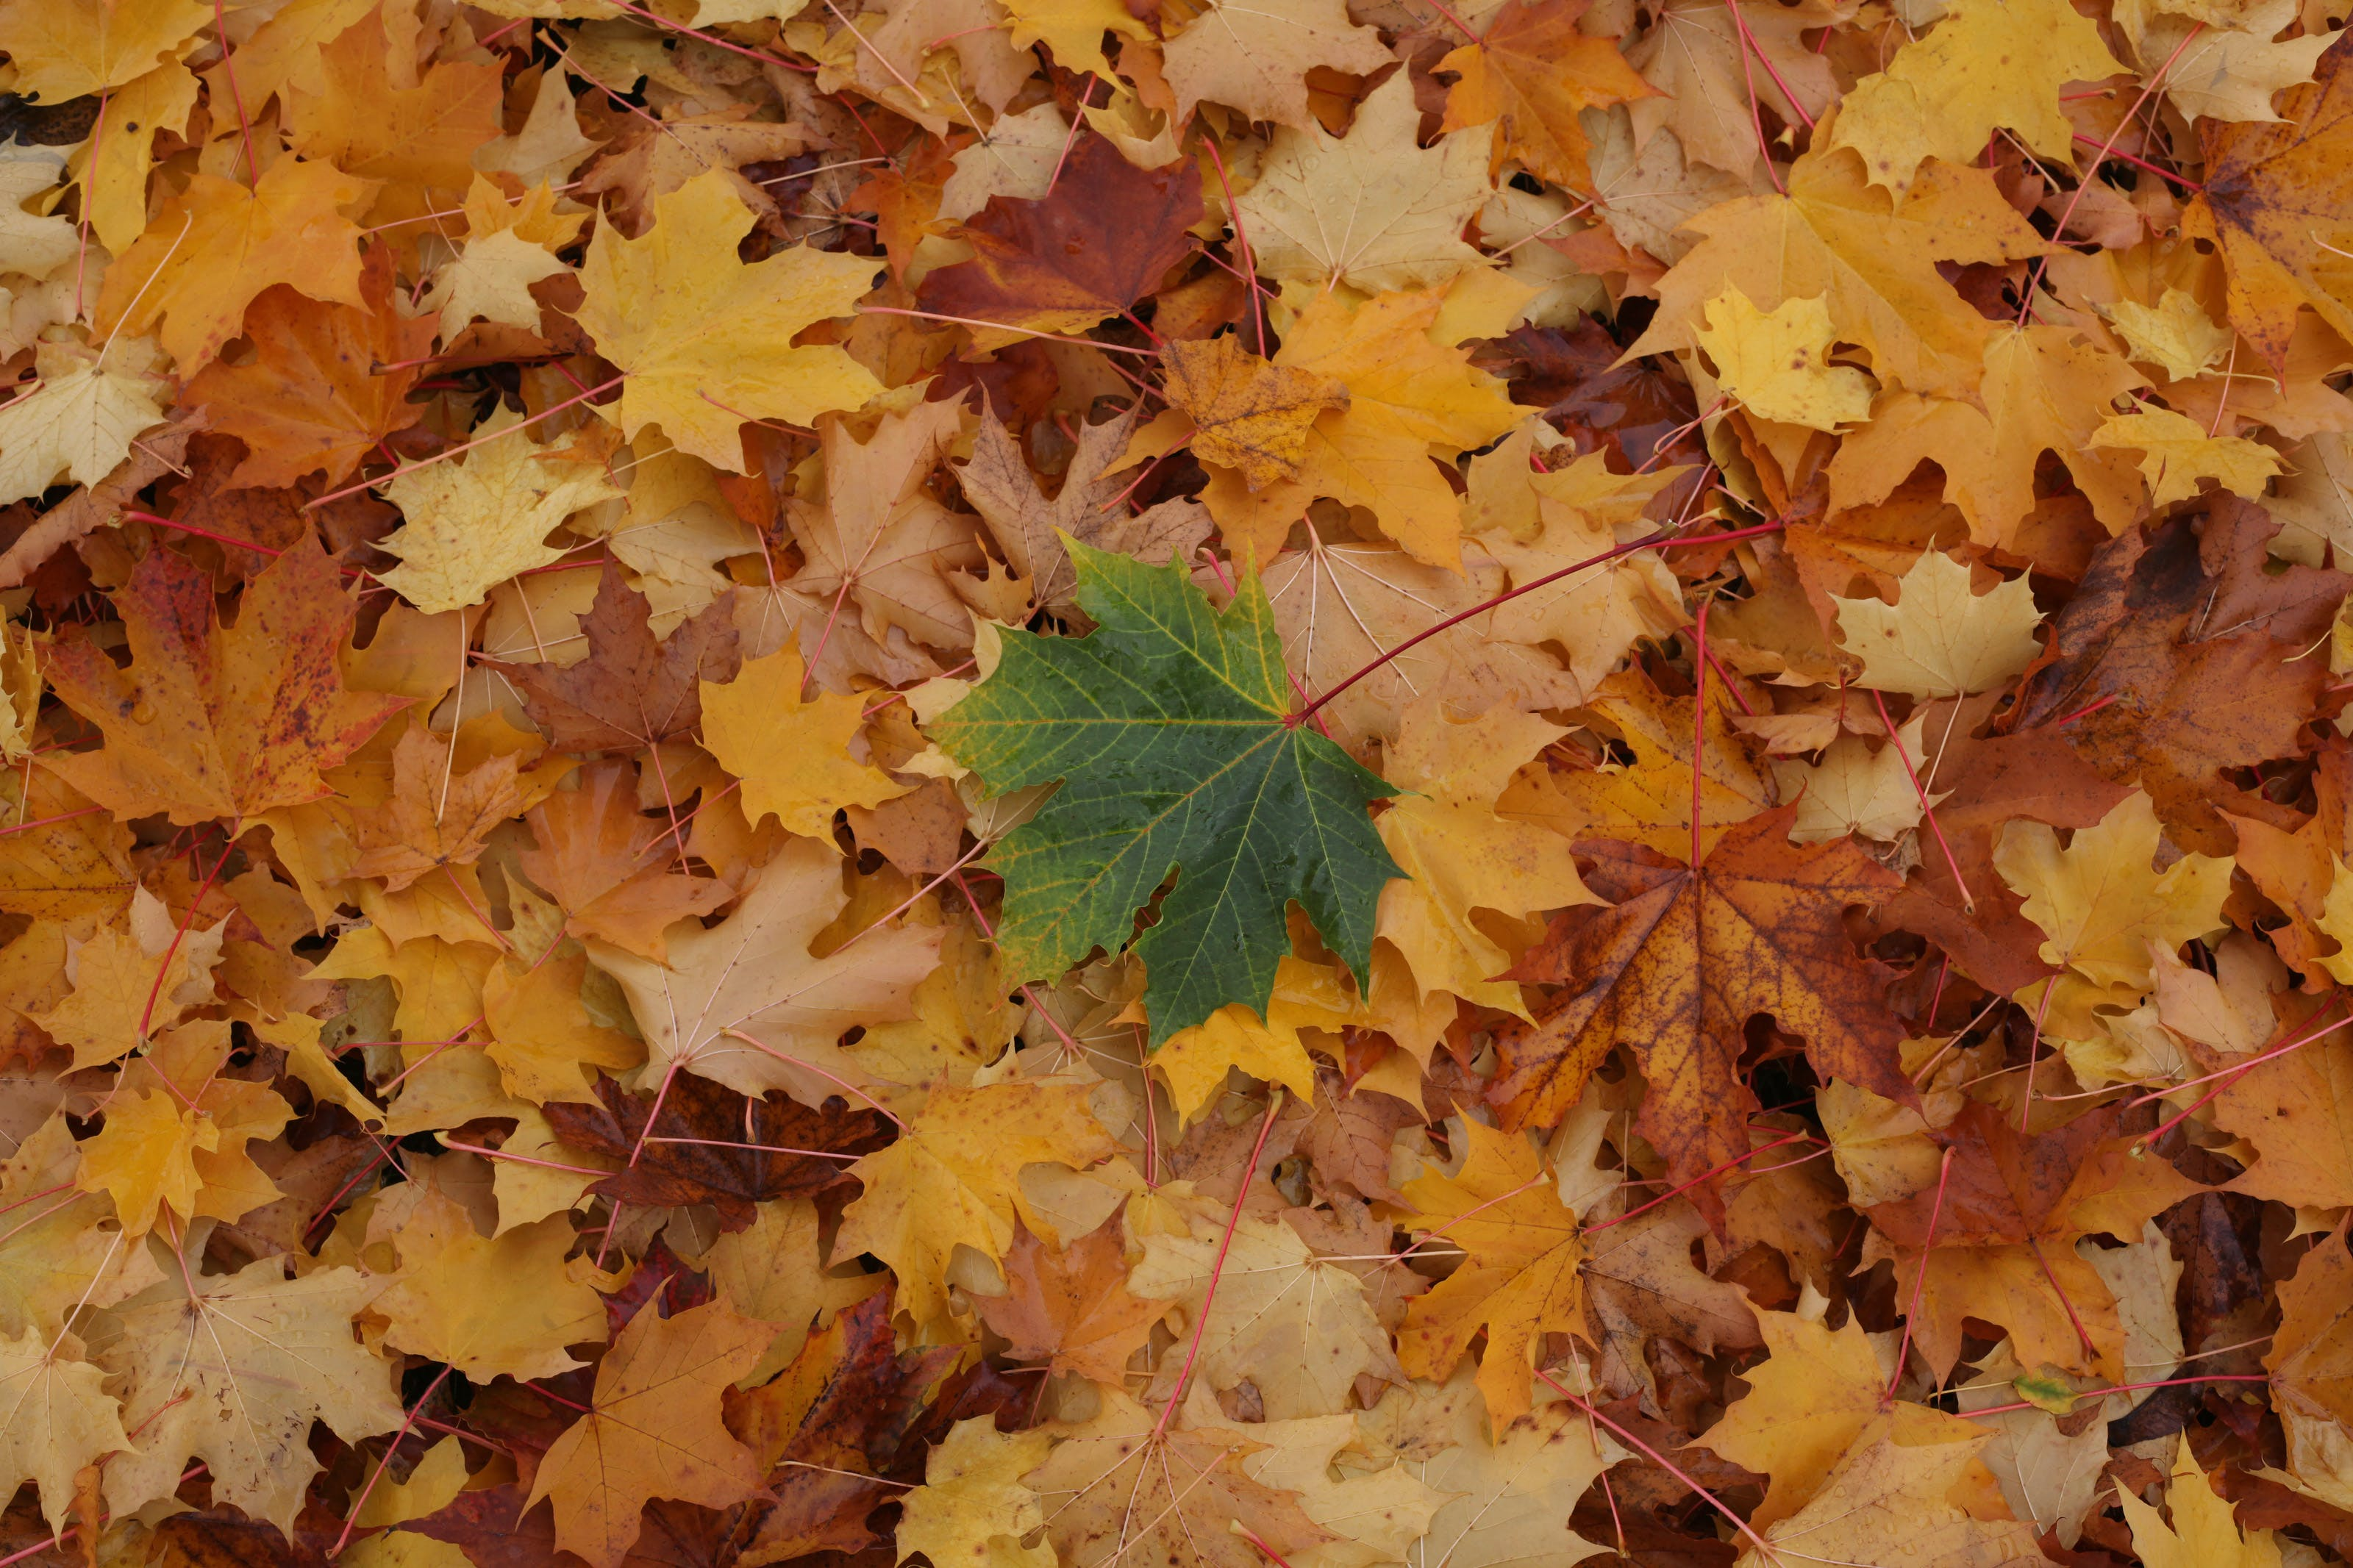 Free stock photo of fall leaves yellow green